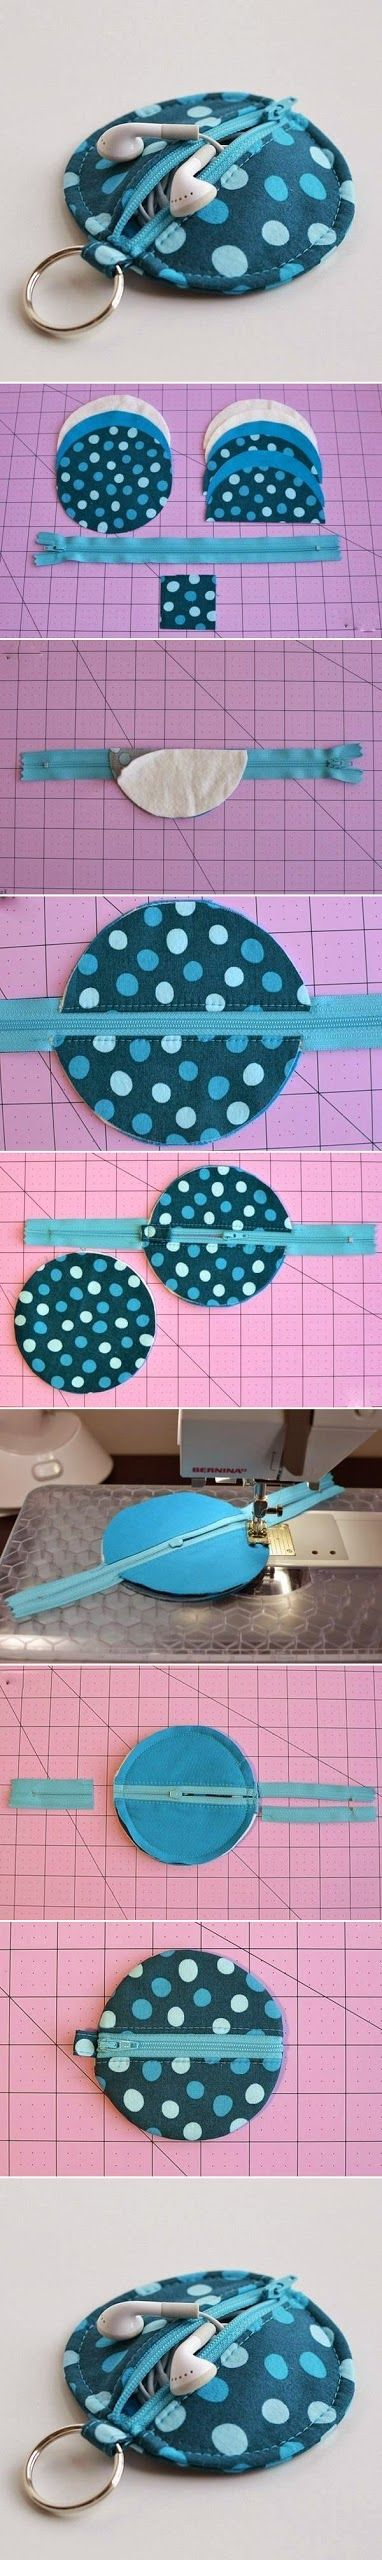 DIY Blue Polka Dot Earphone Case - these are small, so in theory I MIGHT get these done for the girls for xmas!